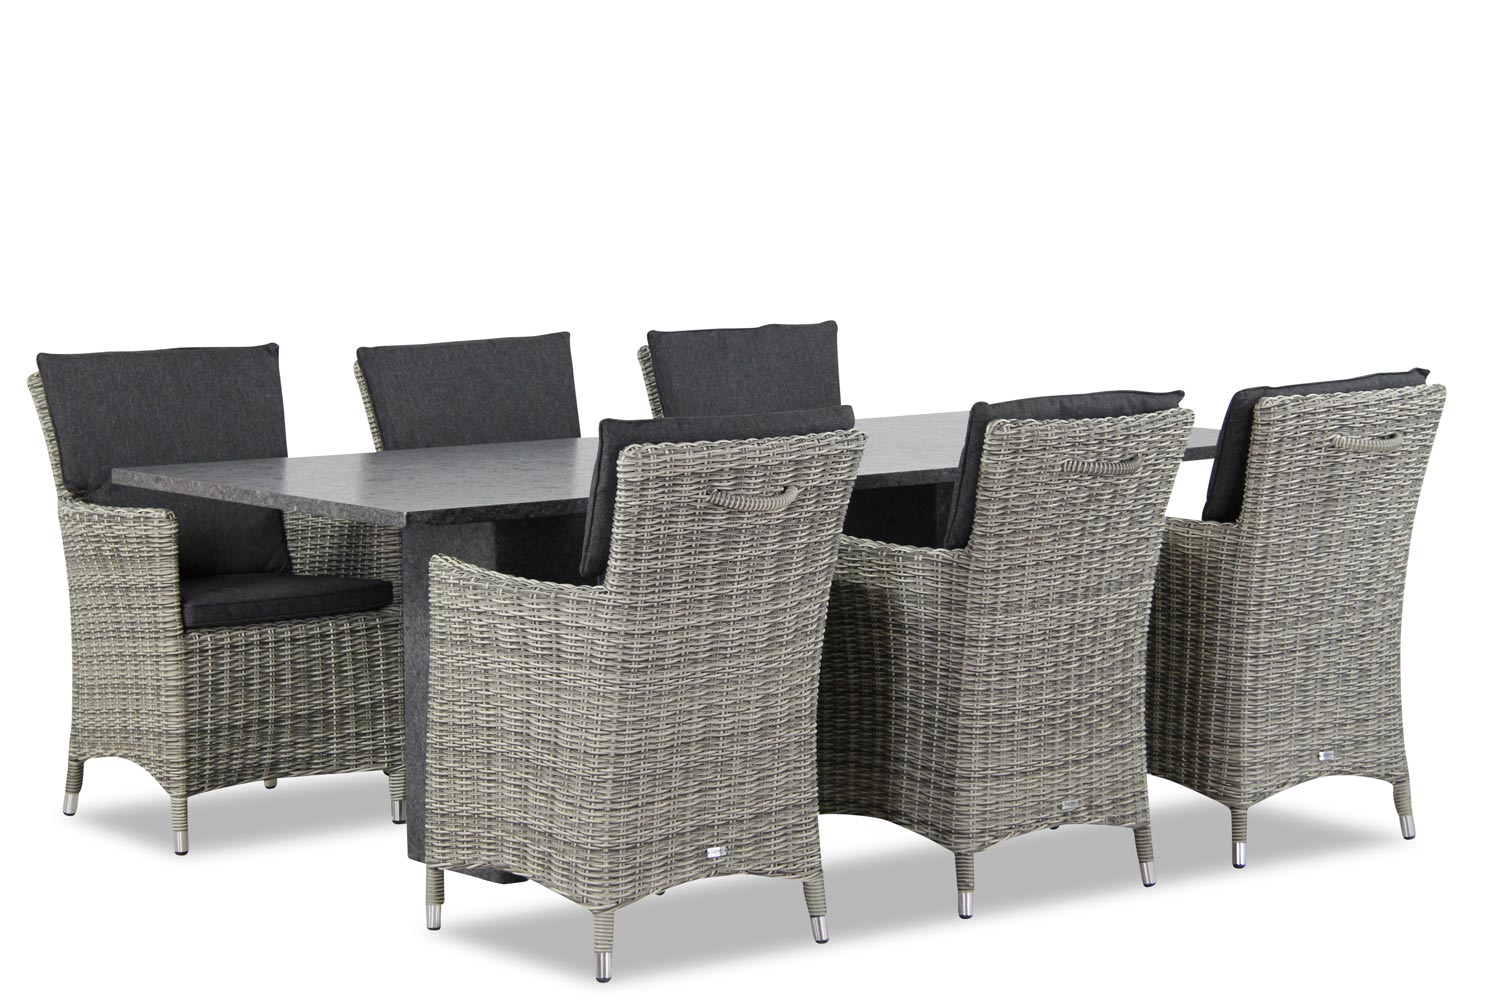 Wicker Garden Collections Springfield/Graniet 220 cm dining tuinset 7-delig